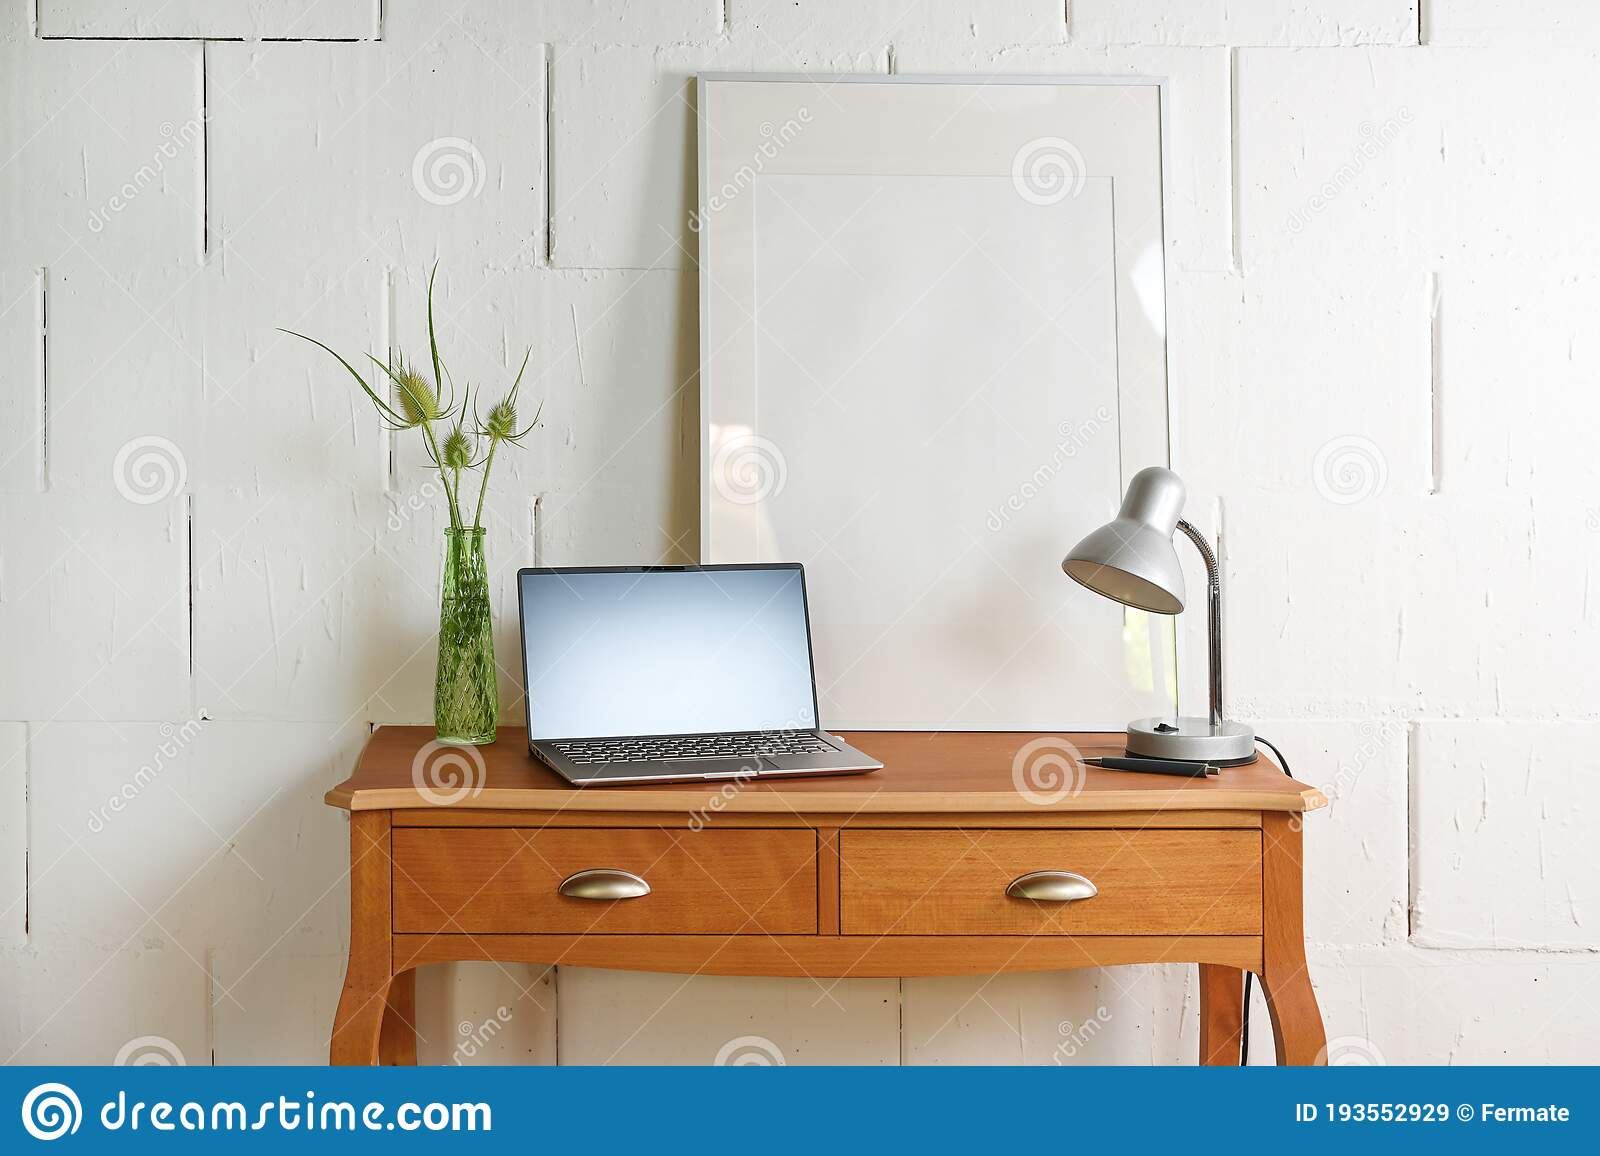 Small Vintage Table Of Reddish Wood With Laptop Desk Lamp And A Picture Frame In Front Of A Raw White Wall Tiny Home Office Stock Image Image Of Laptop Frame 193552929